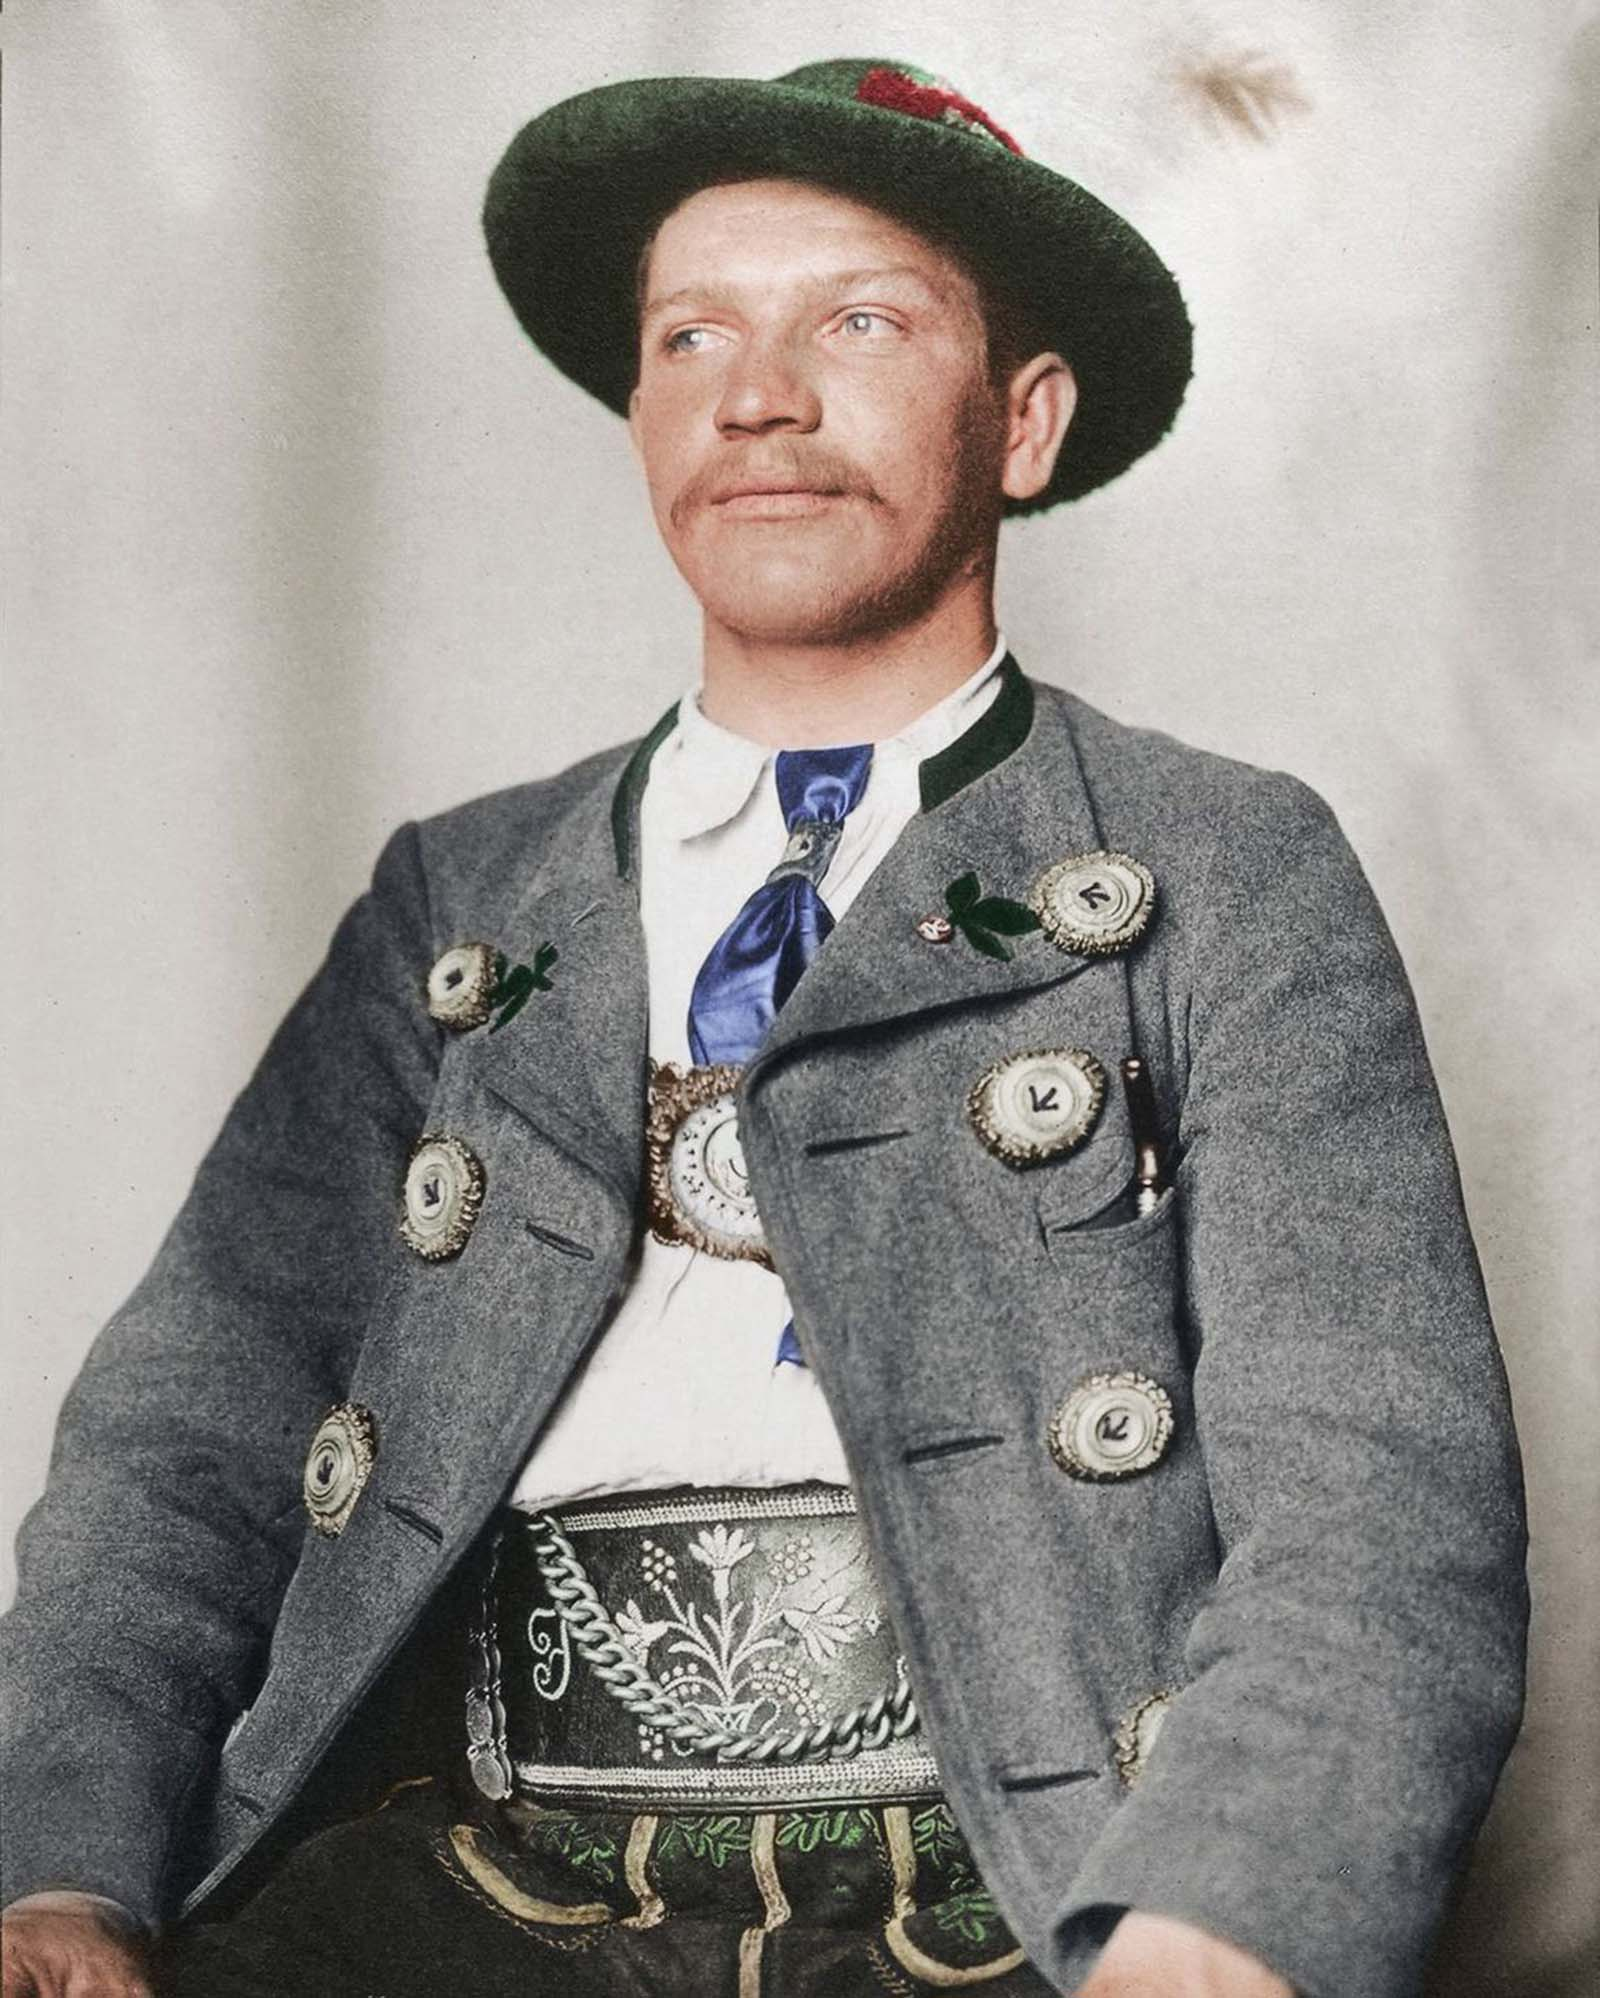 """Bavarian man."""" The traditional dress of Germany is known as the trachten, and like so many others has regional variations. In the alpine regions of Germany like Bavaria, leather breeches known as Lederhosen were worn regularly by rural folk, though in modern-day Germany, most people associate the ga"""